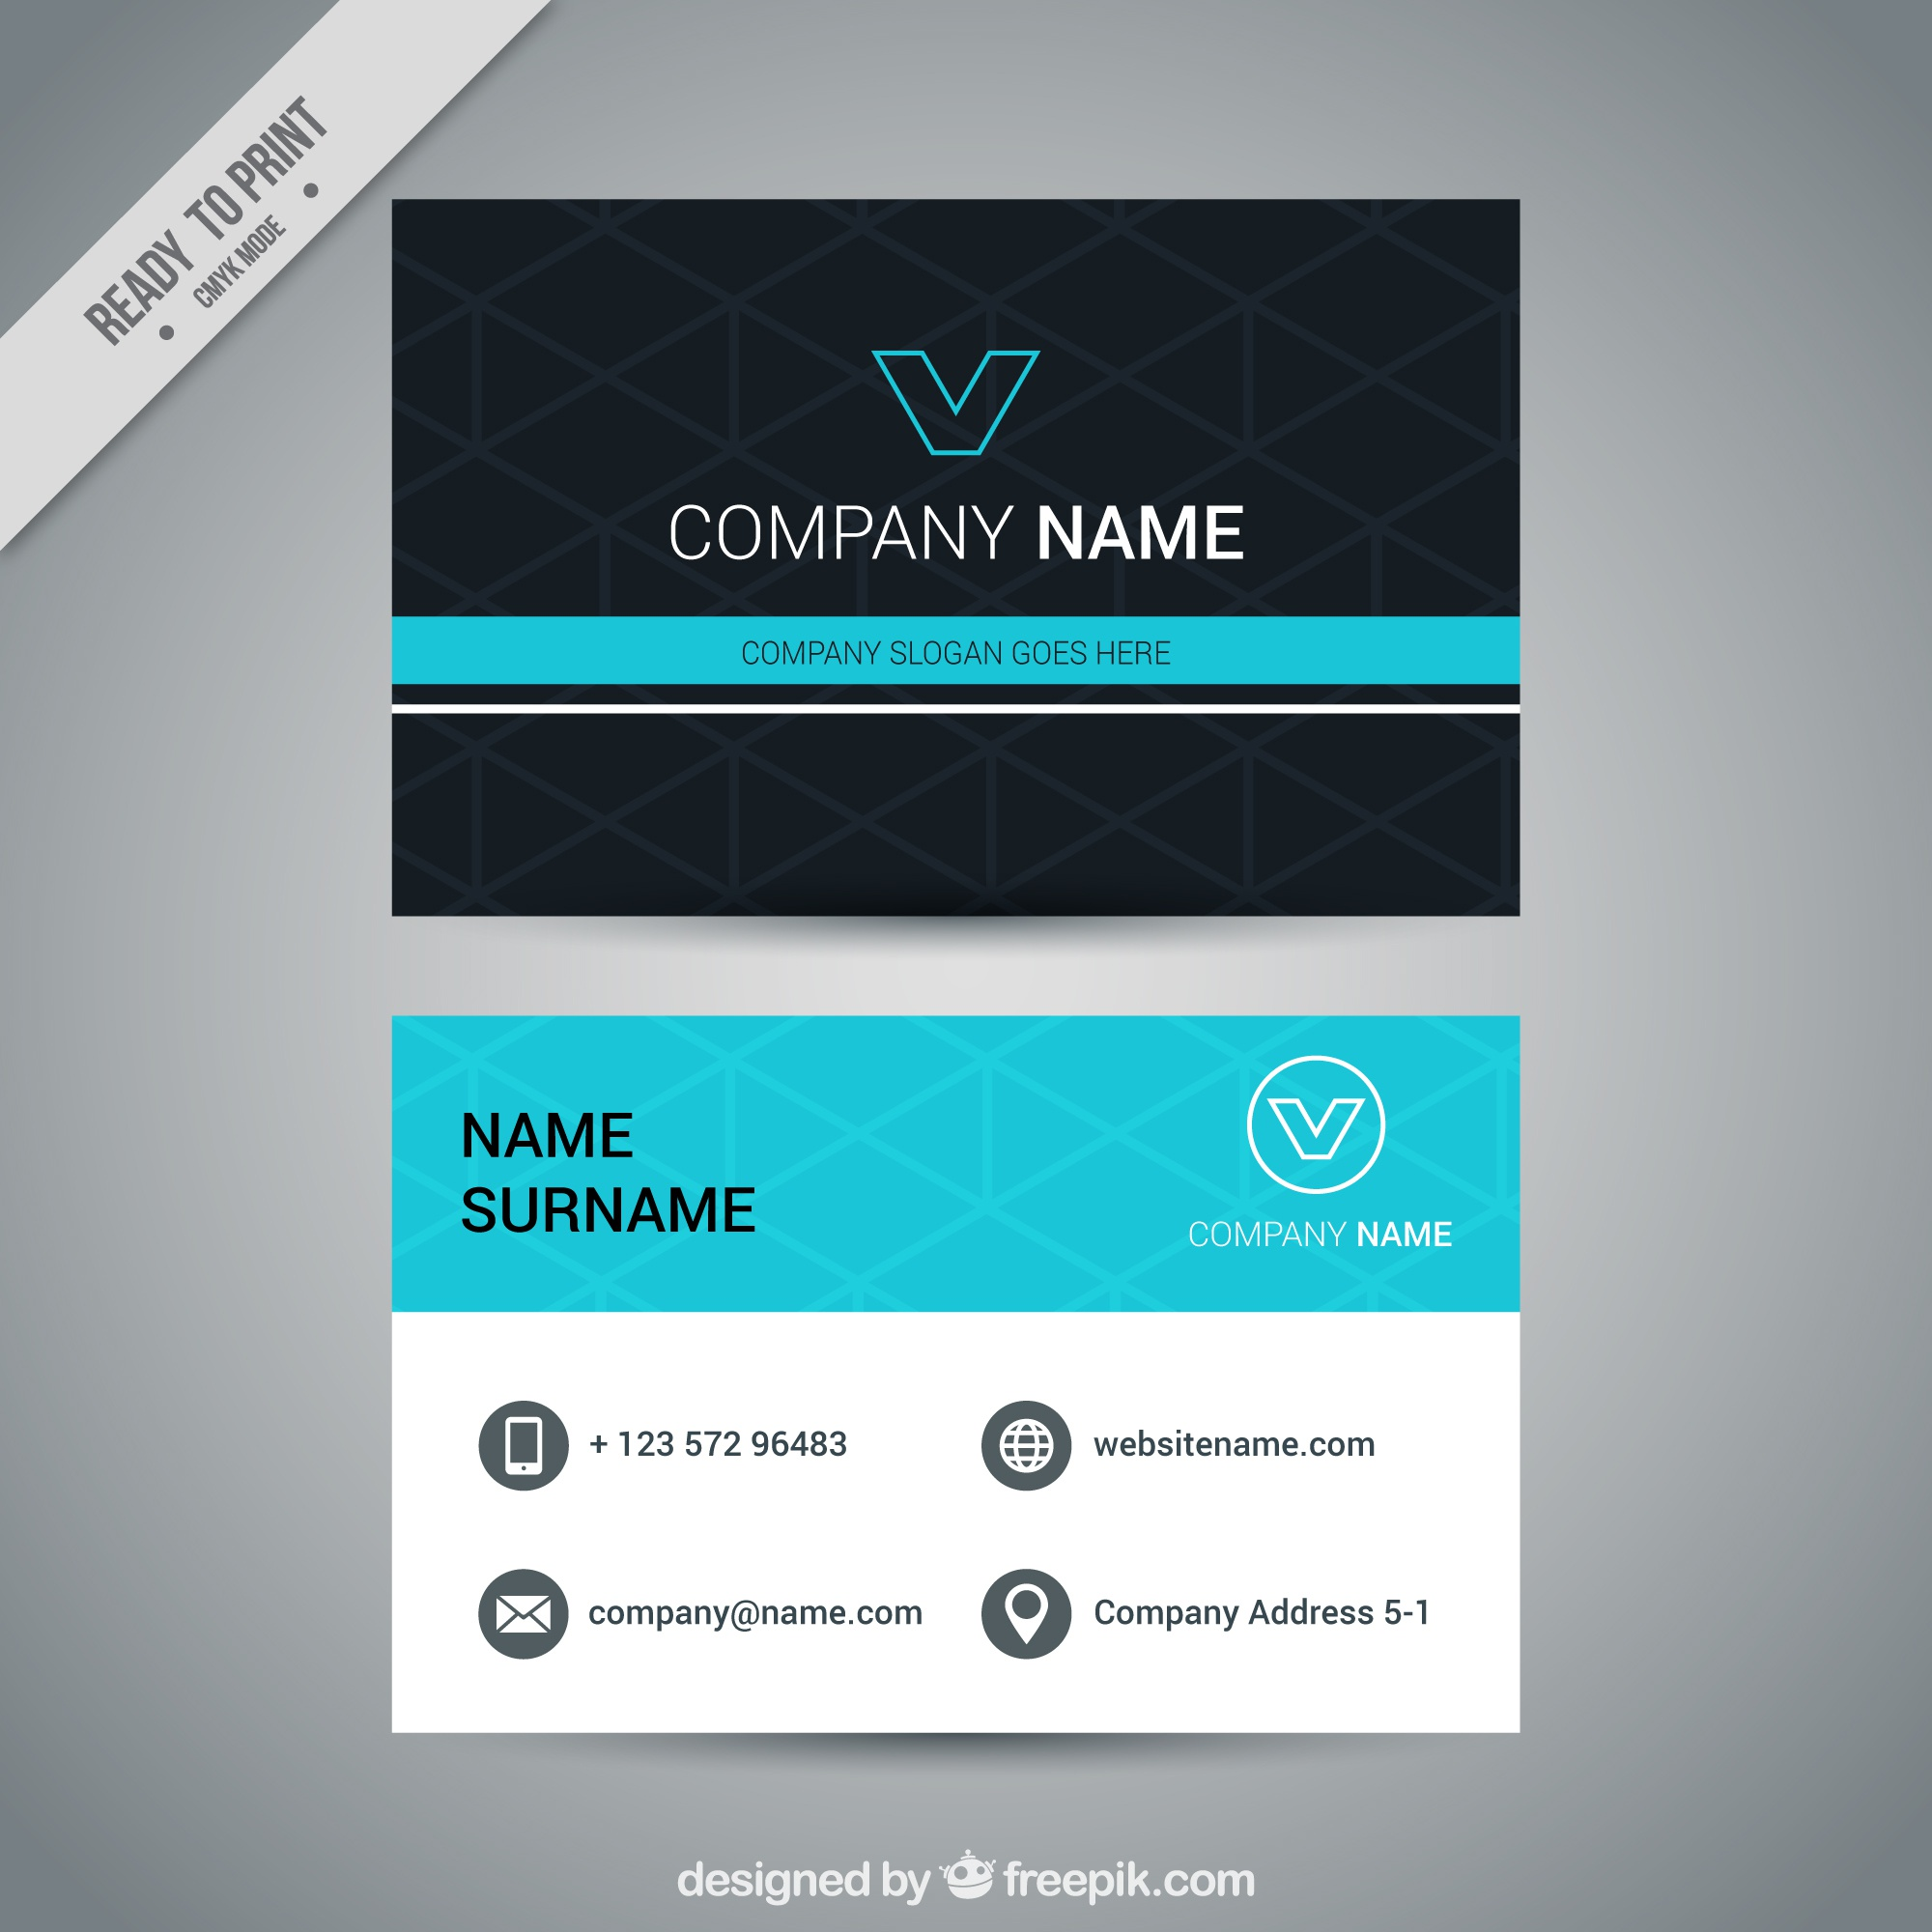 Geometric visiting card with blue details